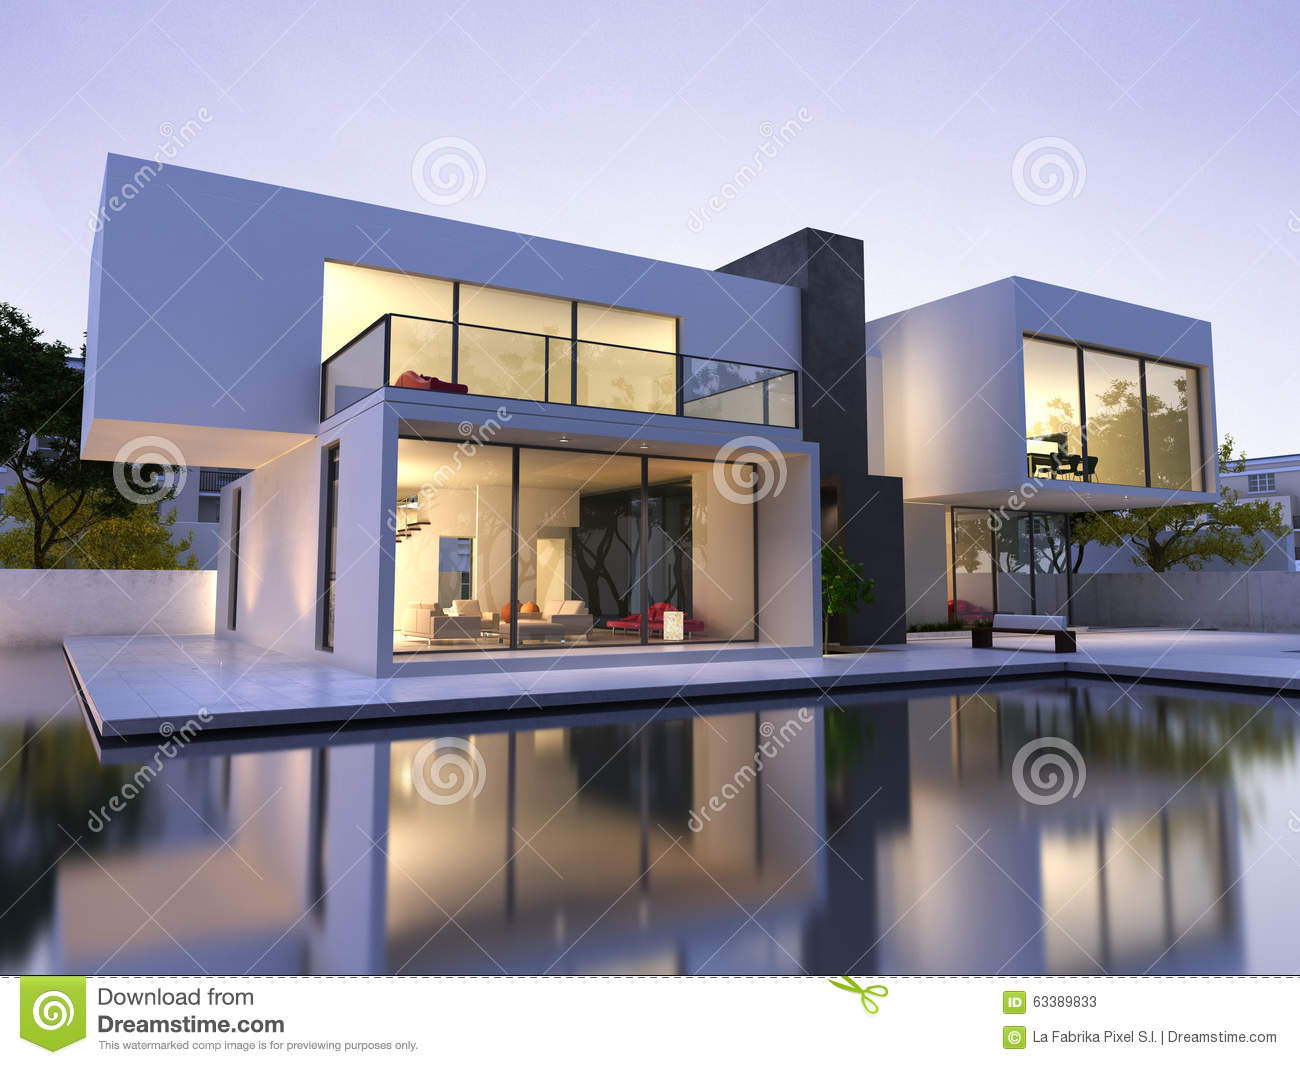 Modern house with pool stock illustration. Illustration of indoor ...